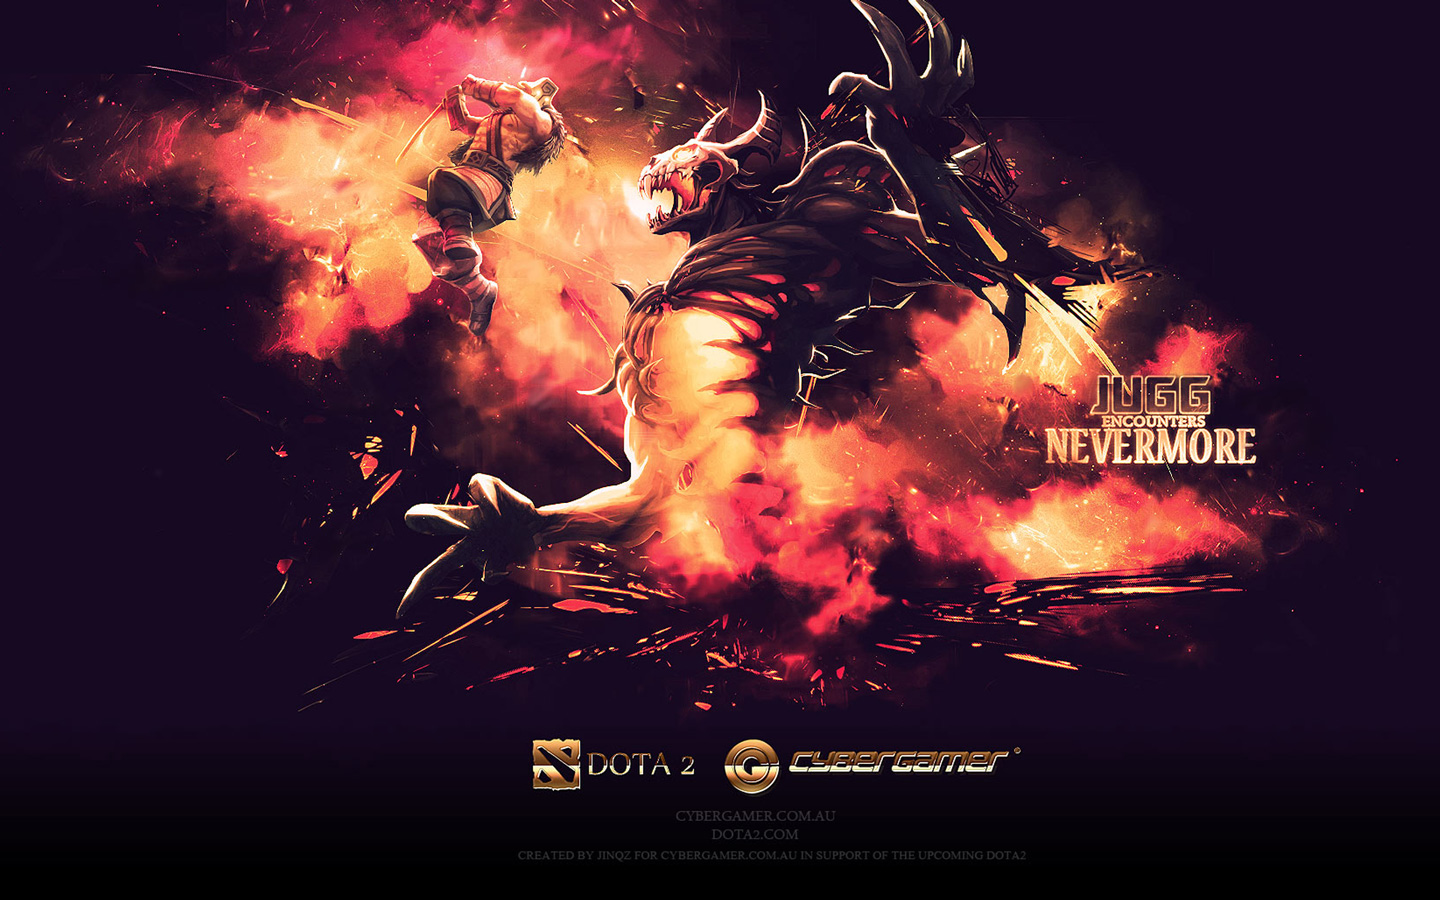 Abstract Dota Dragon Age 2 Wallpaper 1600×900 Wallpaper